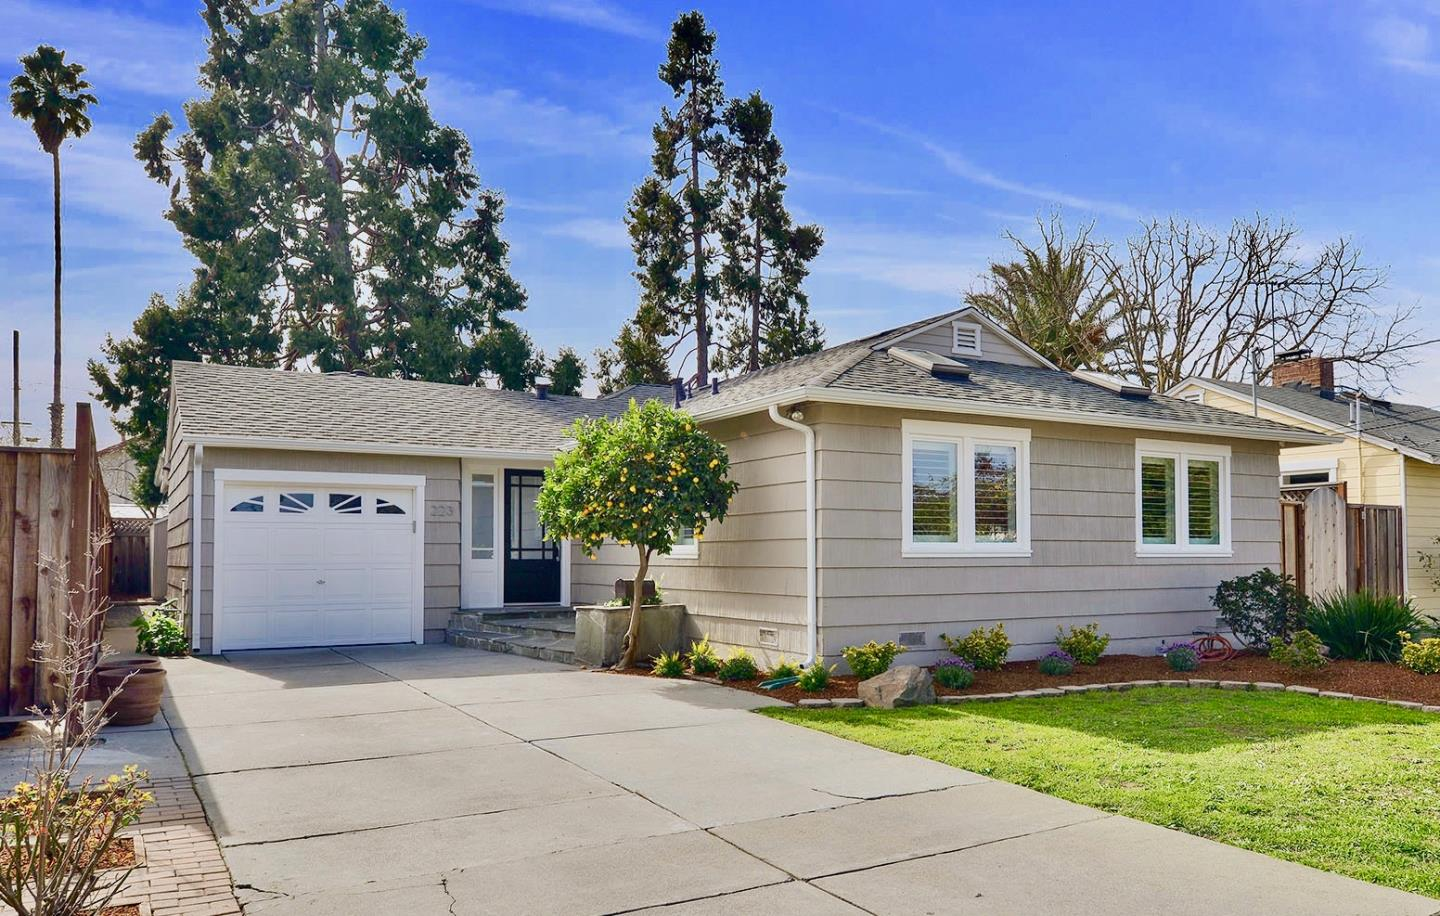 Single Family Home for Sale at 223 Vincent Drive 223 Vincent Drive Mountain View, California 94041 United States